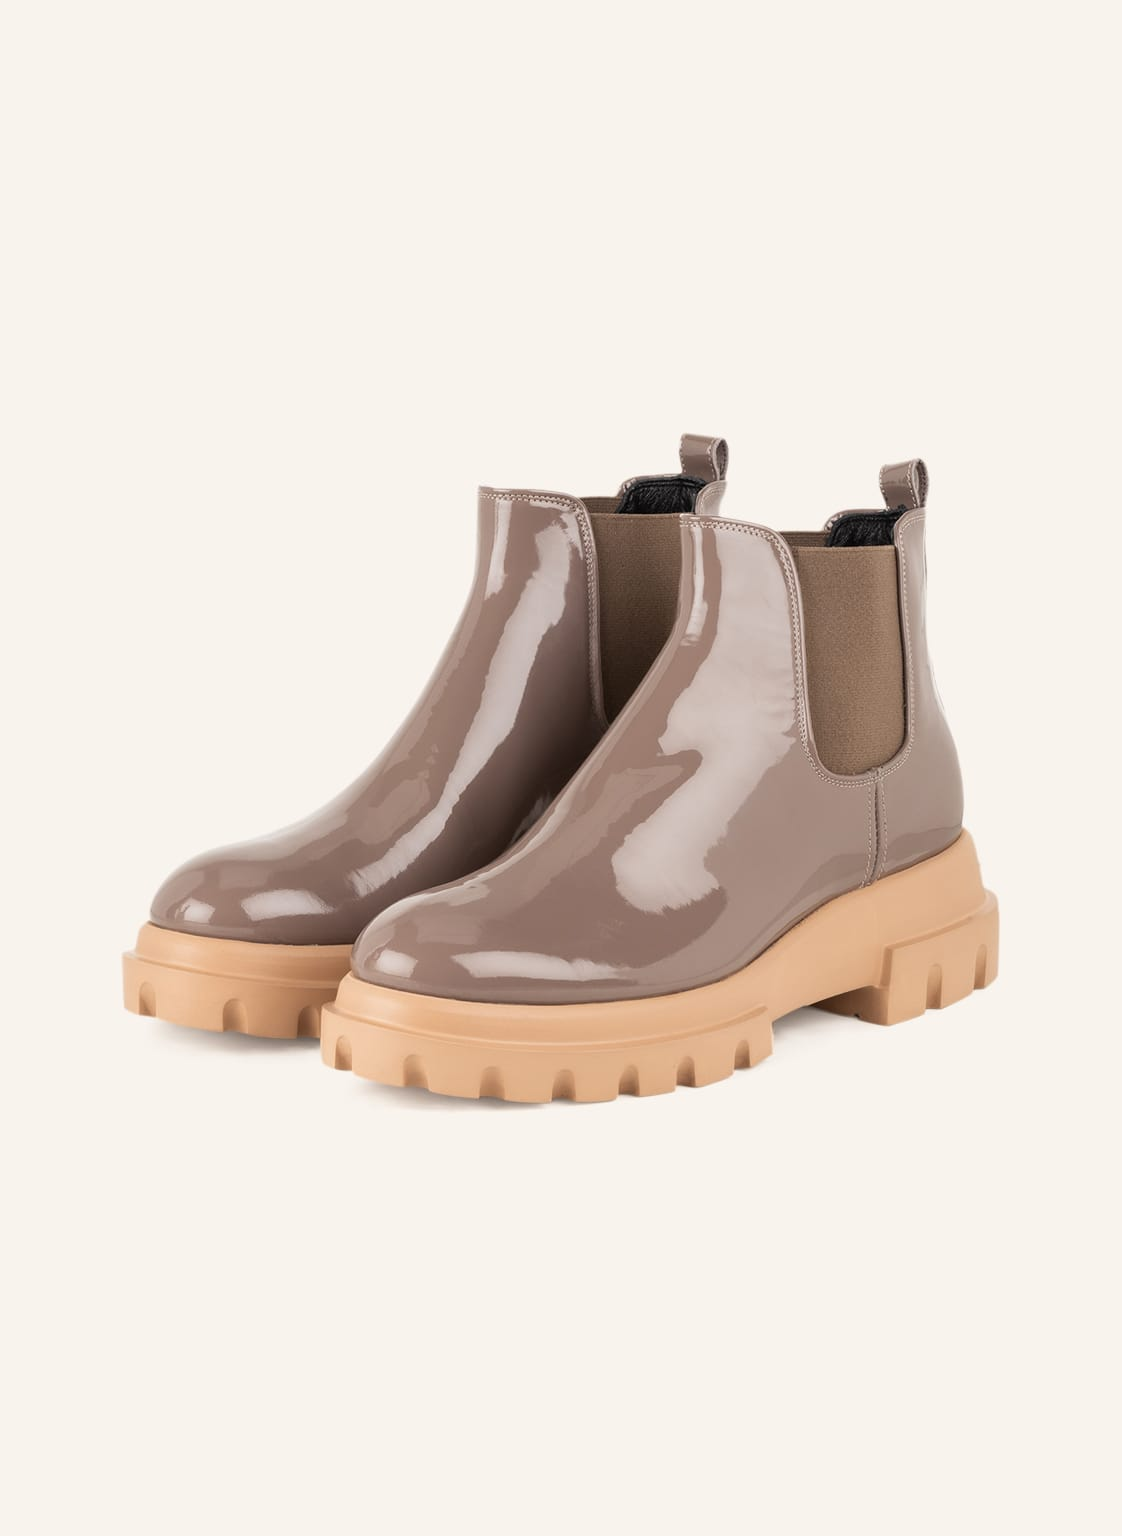 Image of Agl Chelsea-Boots Maxine beige